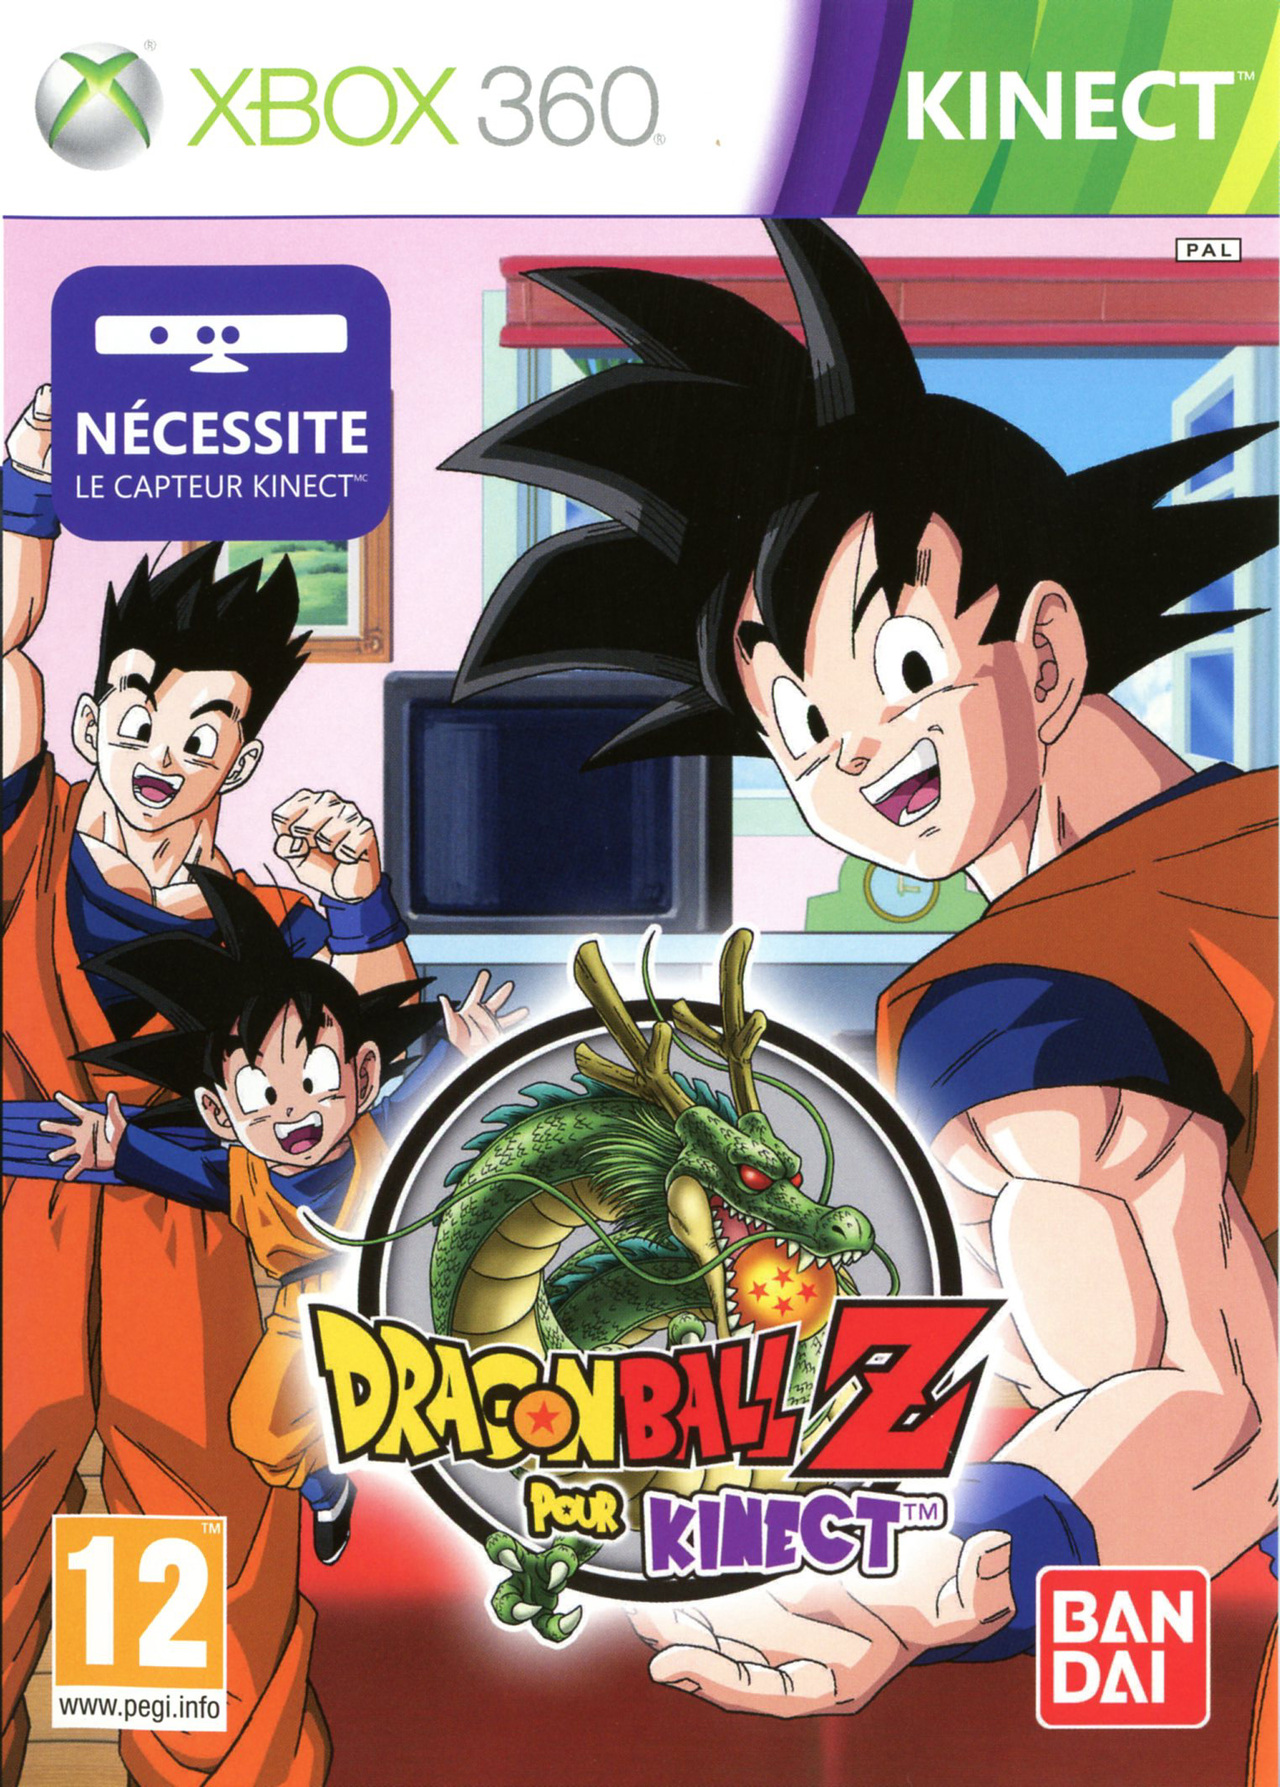 Achat dragon ball z for kinect sur 360 for Chambre dragon ball z